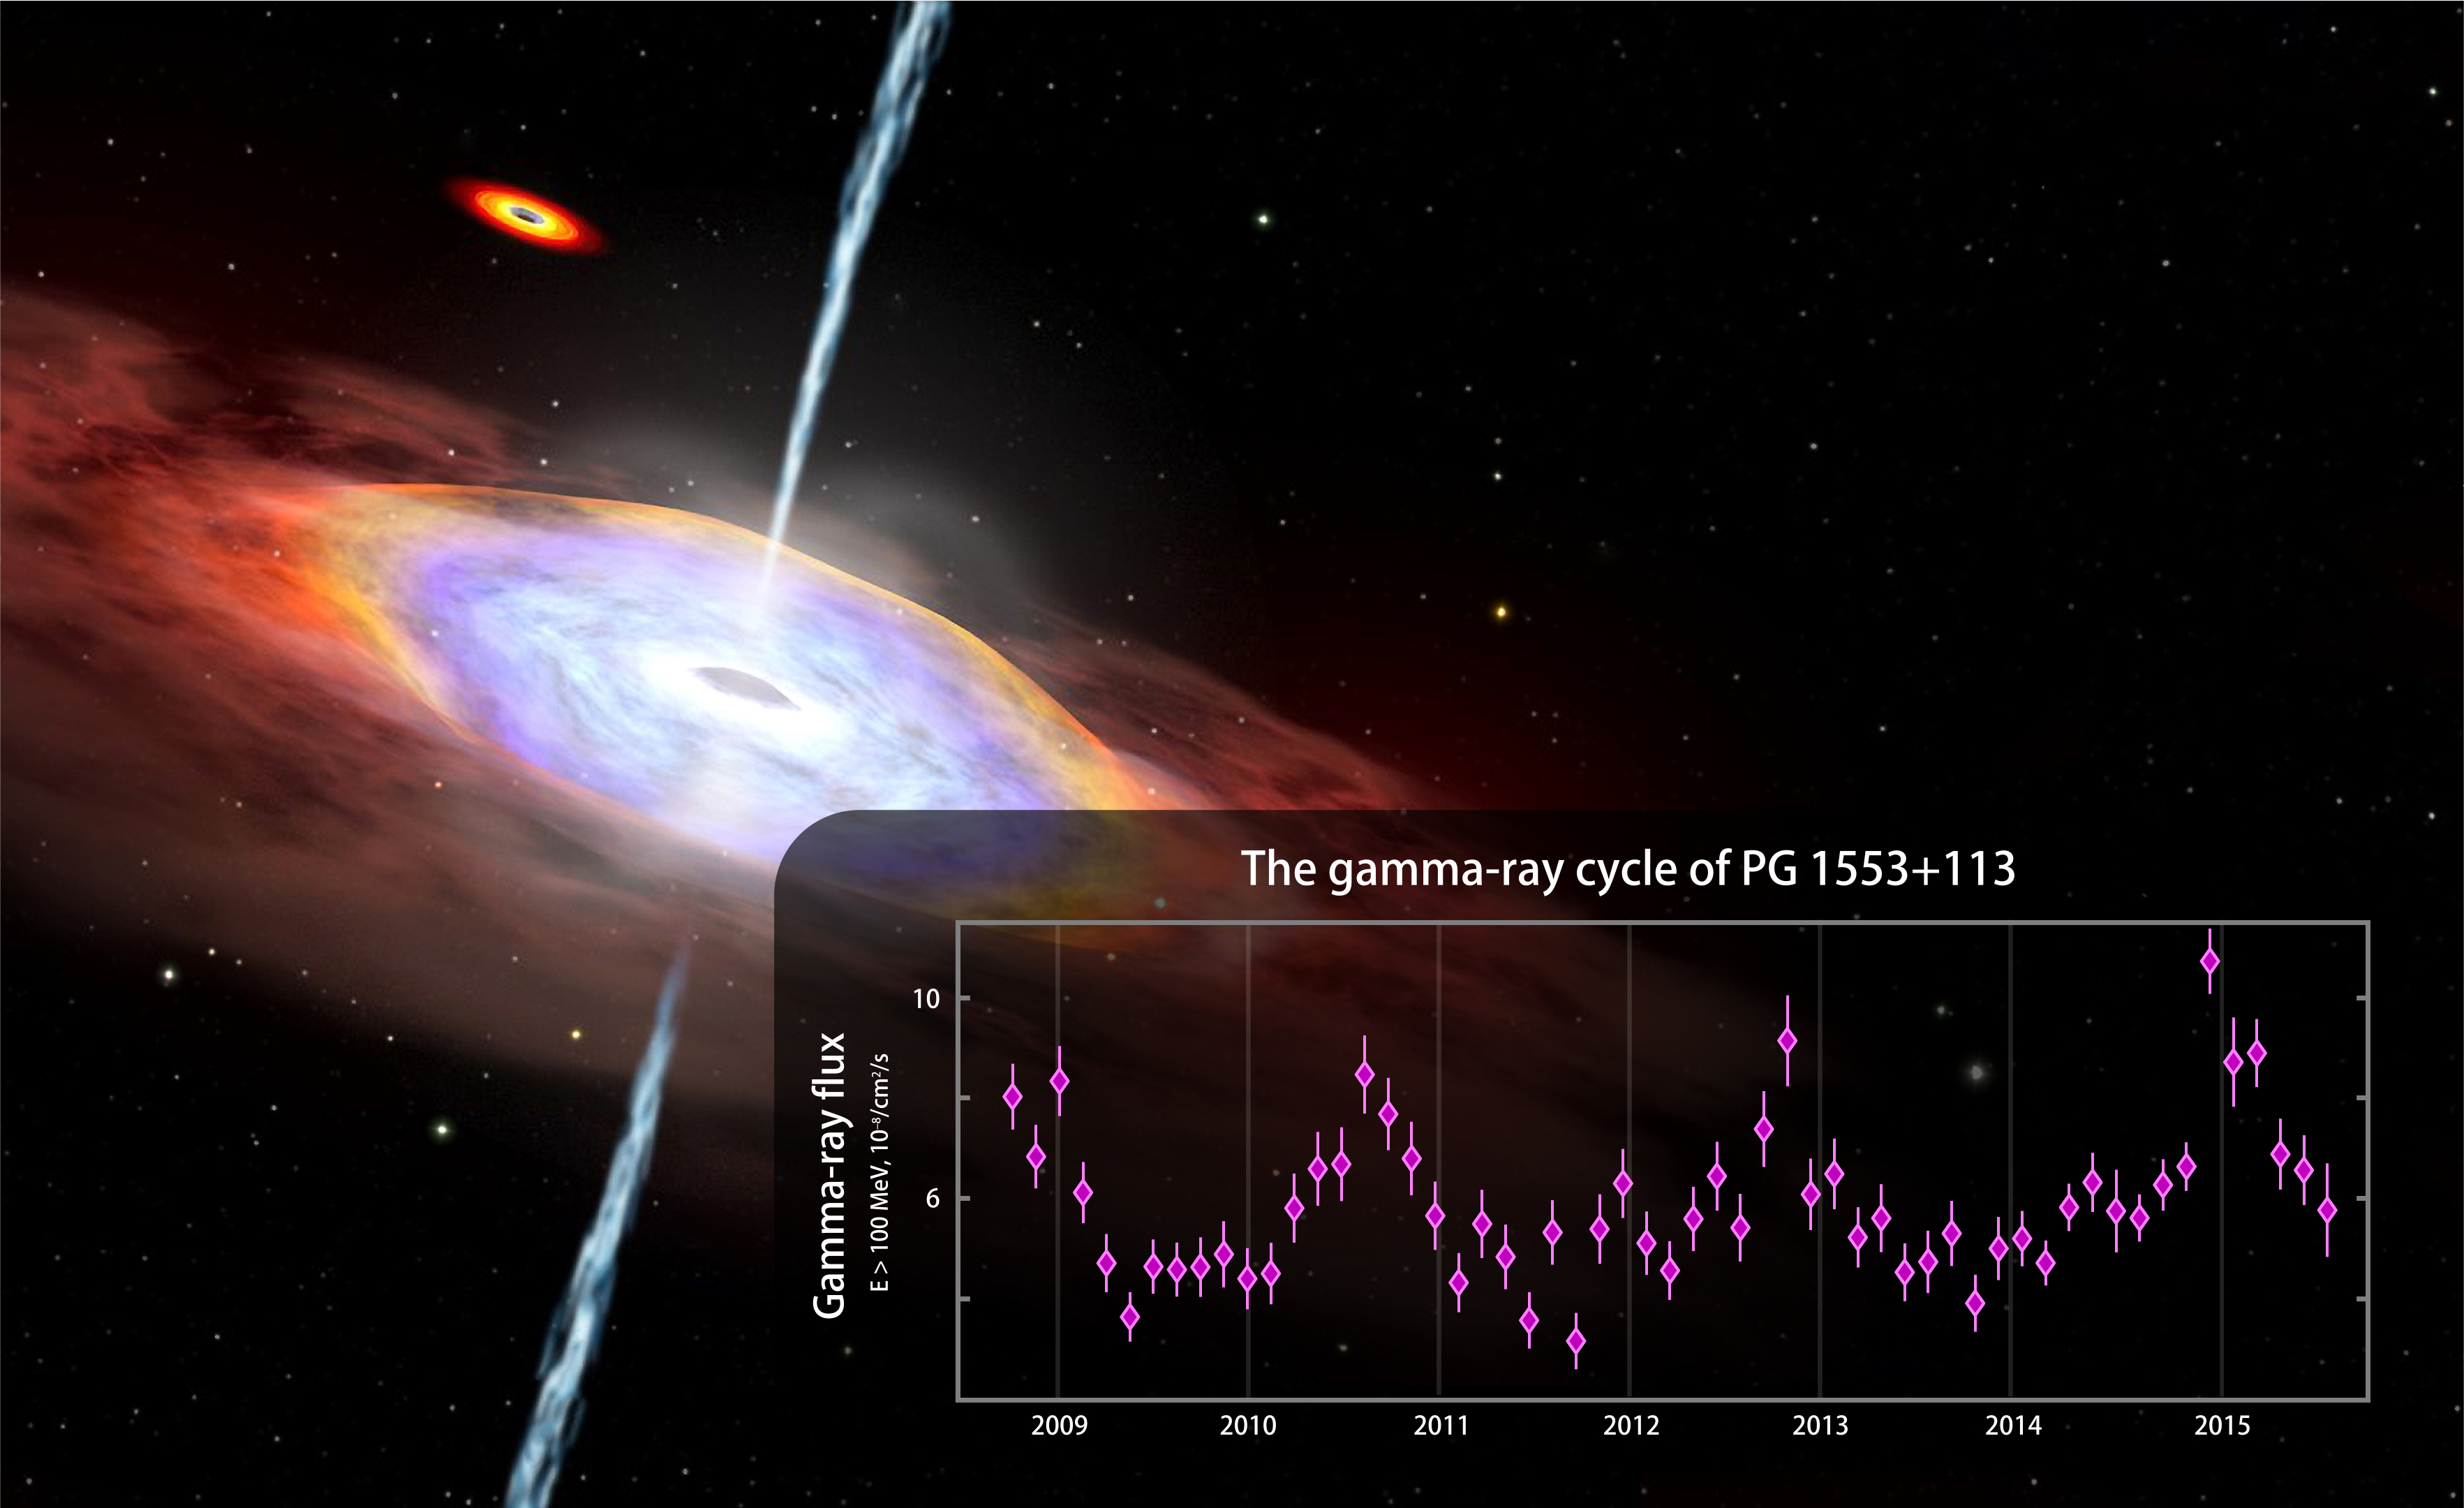 NASA's Fermi Mission Finds Hints of Gamma-ray Cycle in an Active Galaxy